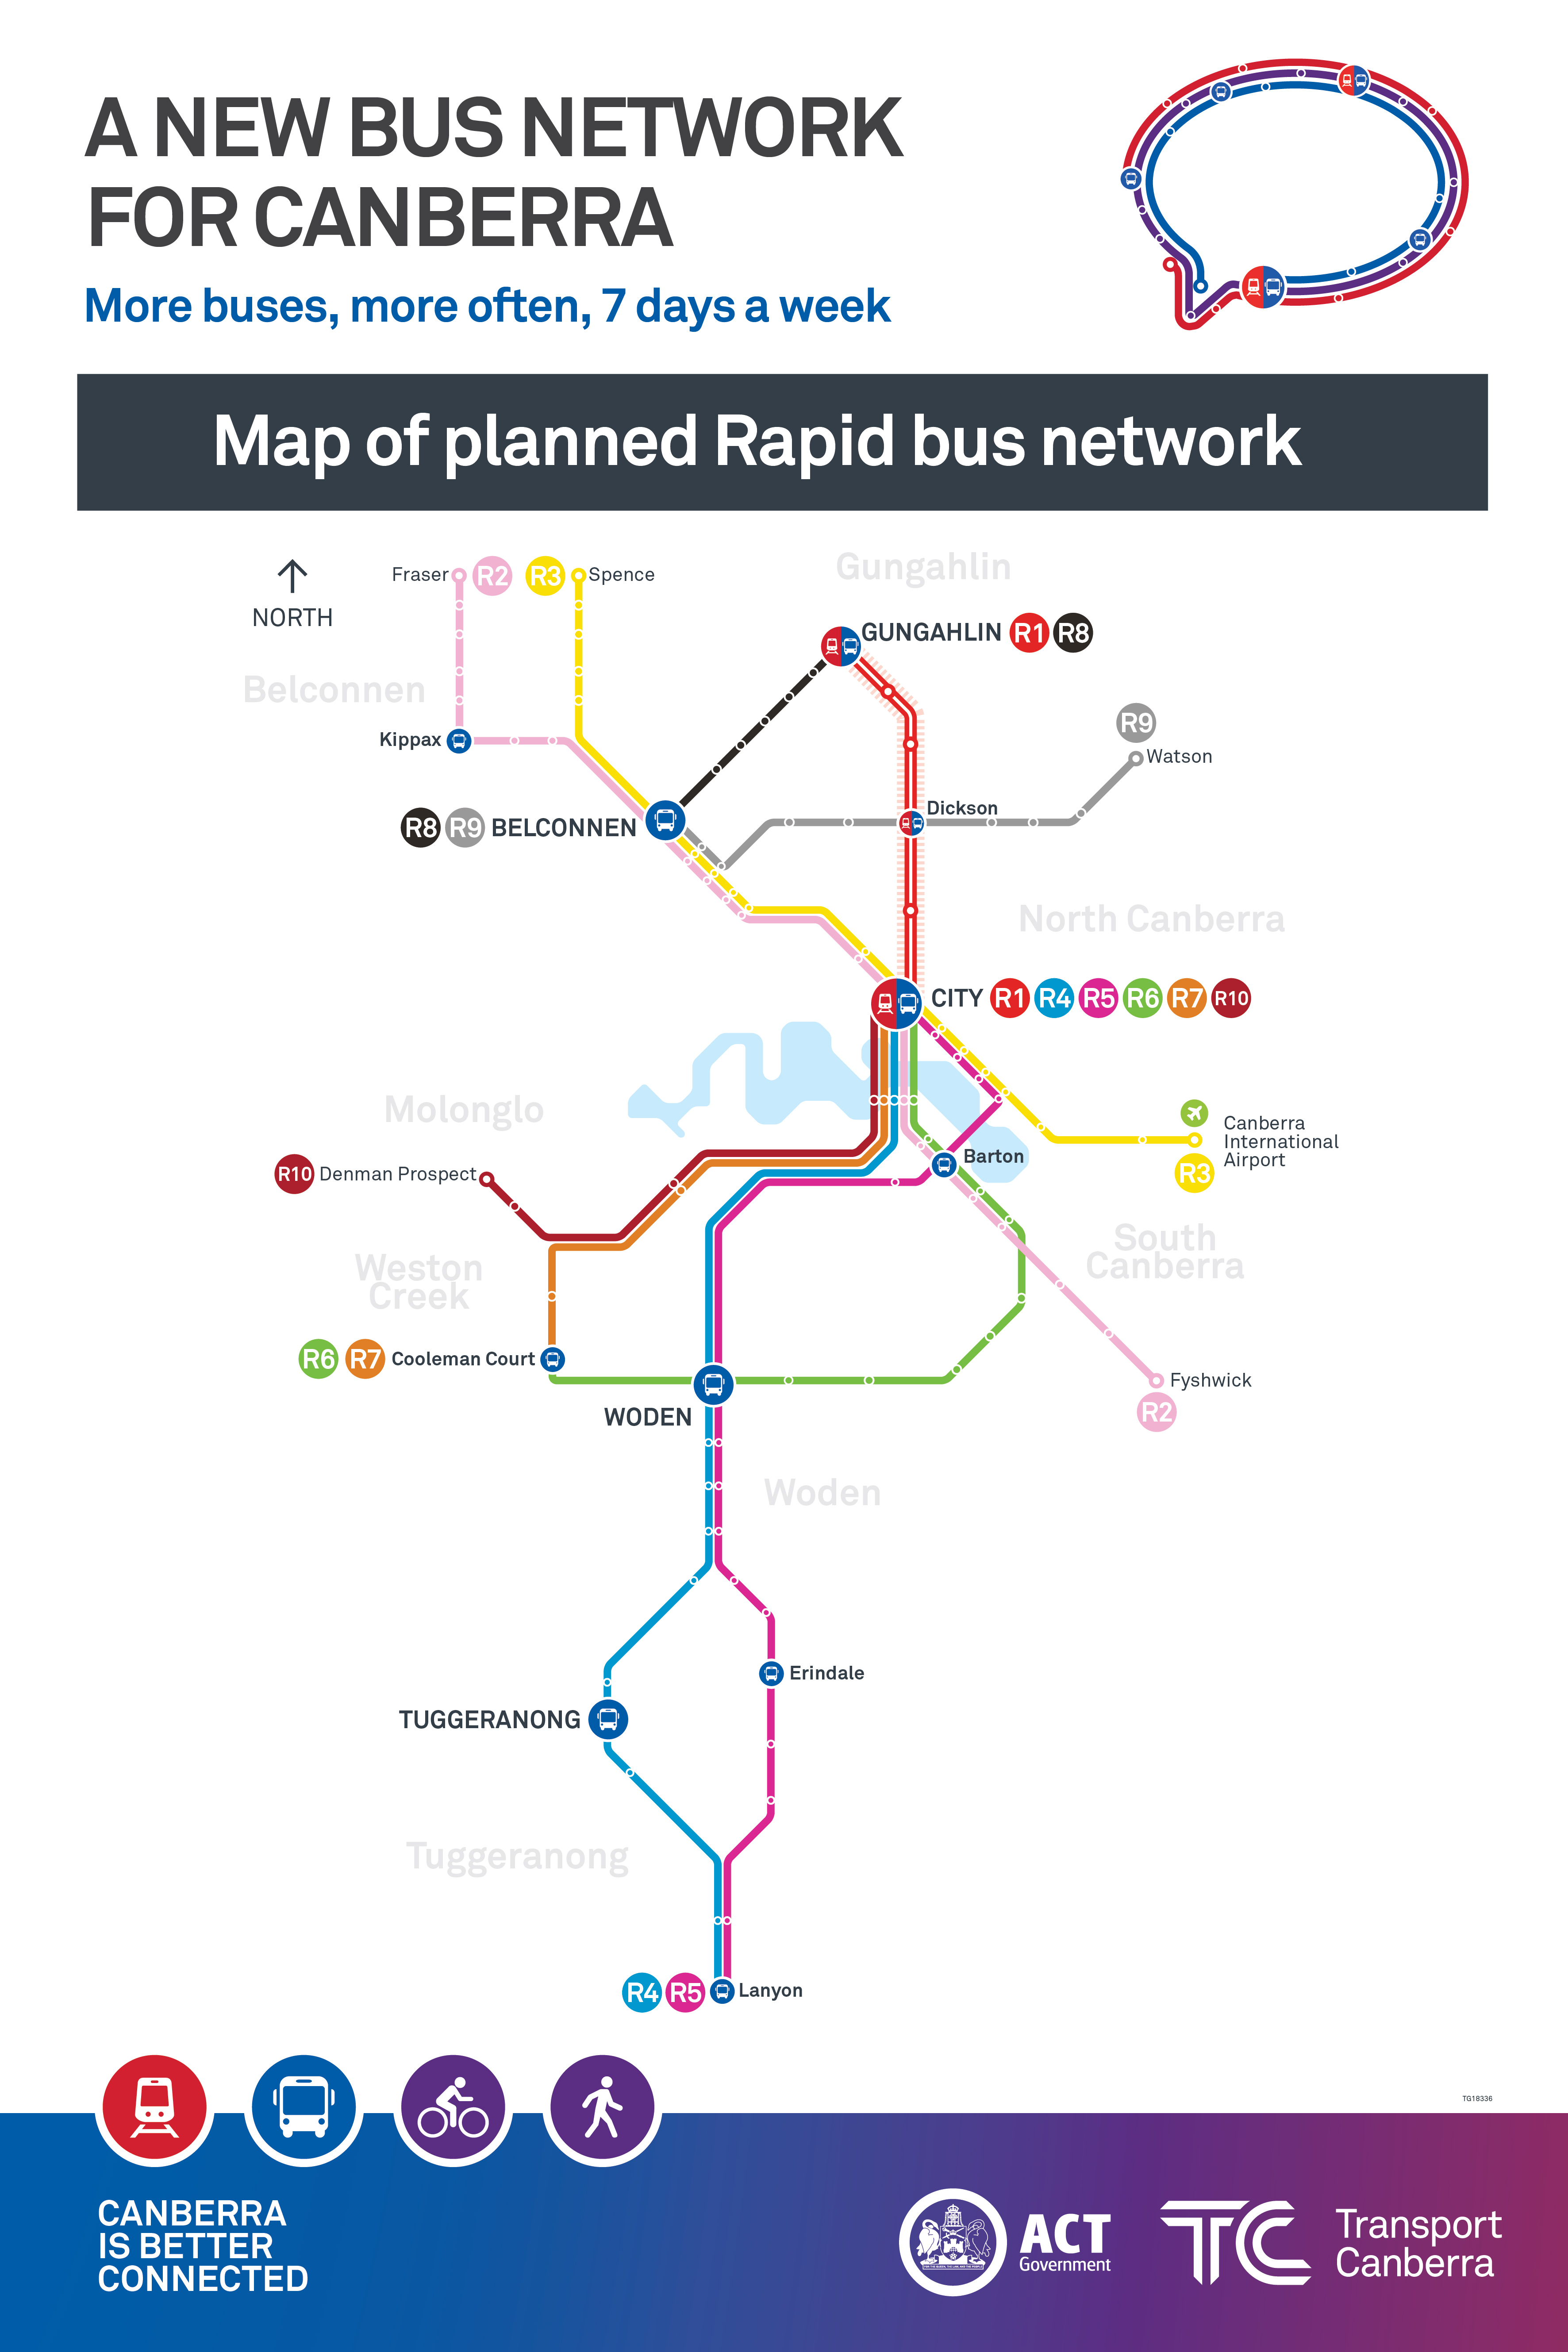 Rapid network route